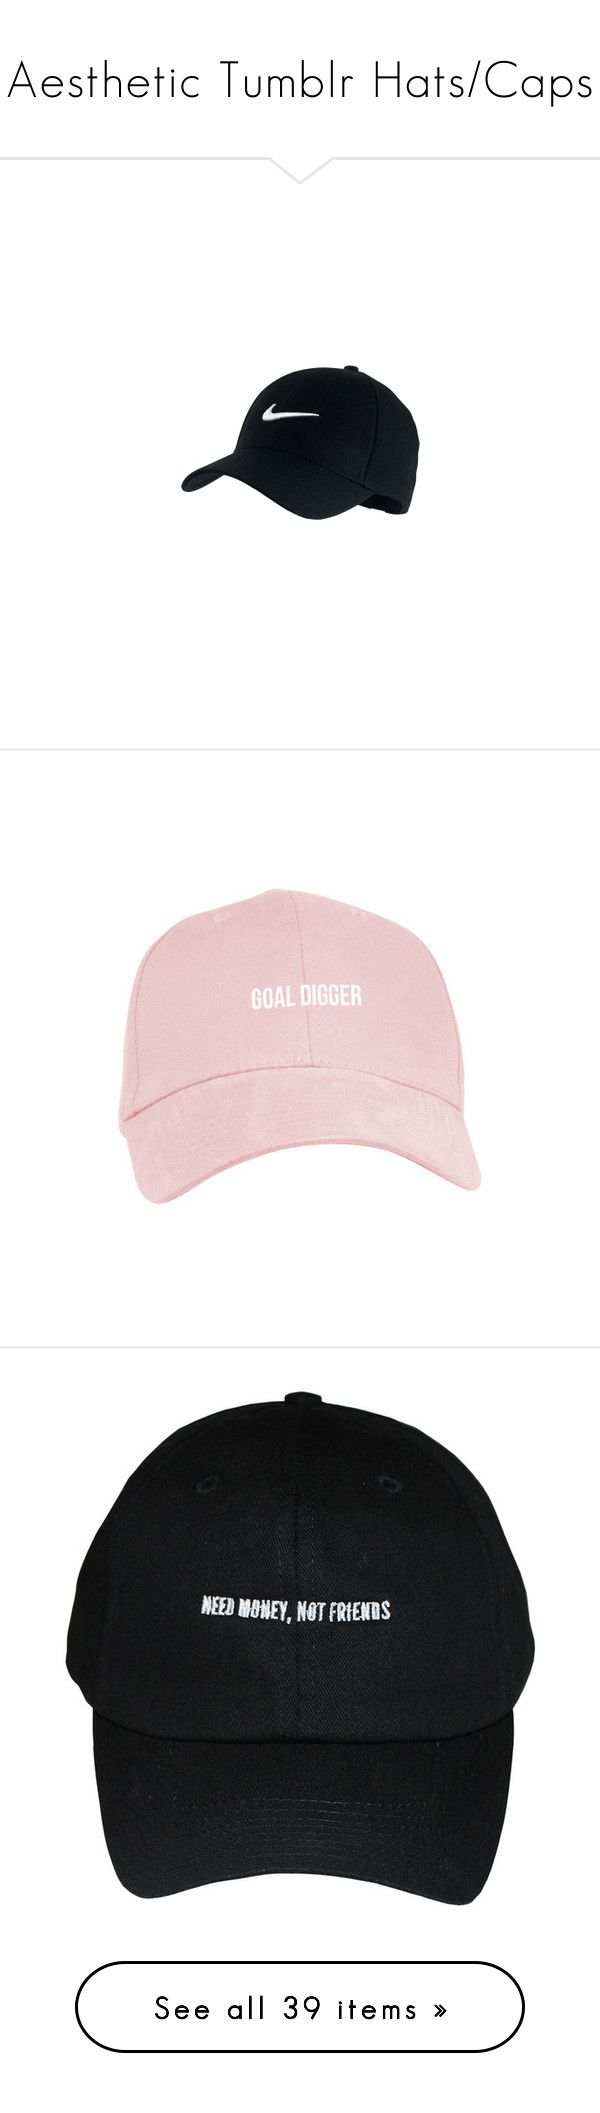 """Aesthetic Tumblr Hats/Caps"" by megsmulroy ❤ liked on Polyvore featuring accessories, hats, headwear, nike, sports cap, sports hats, sport hats, nike hat, fillers and extra"